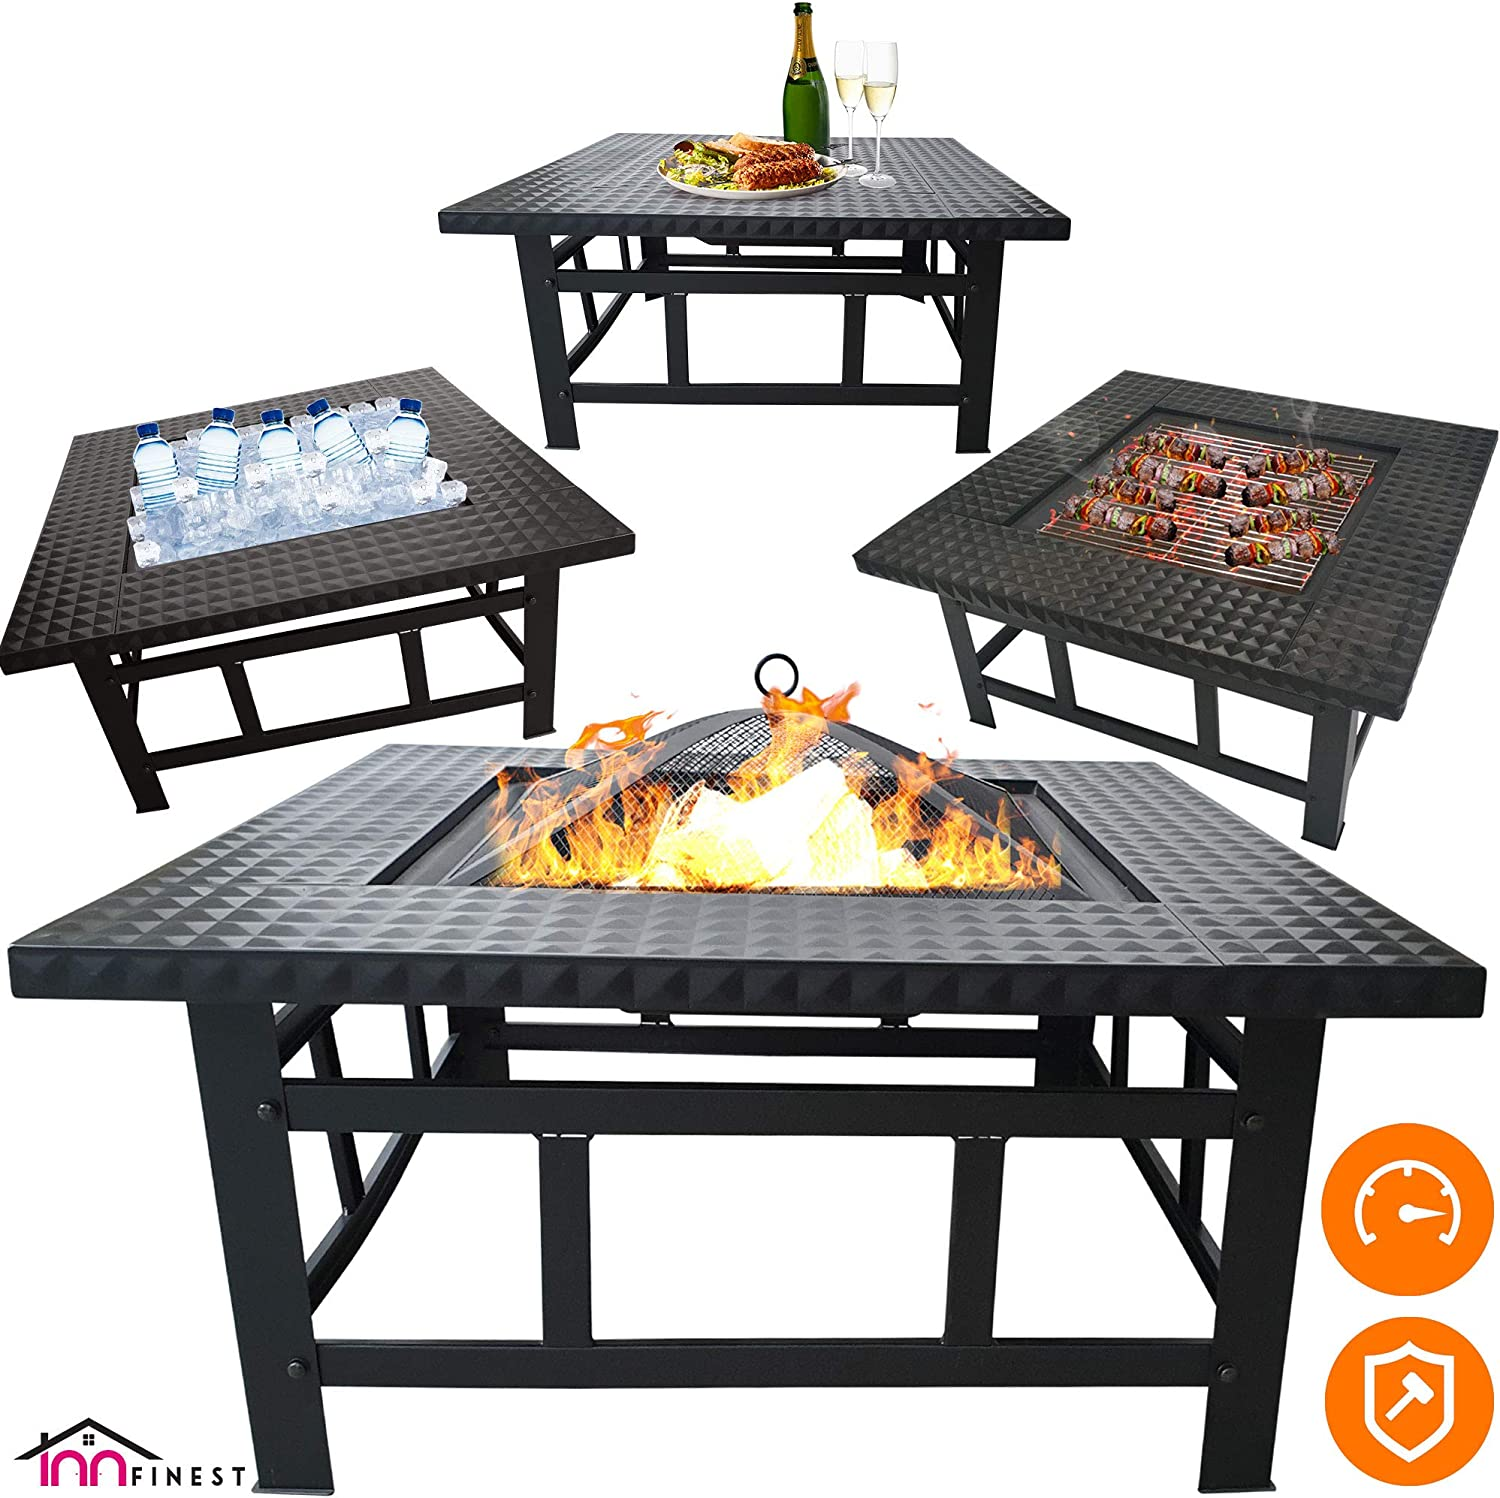 Fire Pit Table Outdoor Set – 32 Inch Diameter Square Fireplace – Multifunctional Garden Terrace Fire Bowl Heater, BBQ, Ice Pit, Outside Wood Burning – with BBQ Grill Shelf, Waterproof Rain Cover